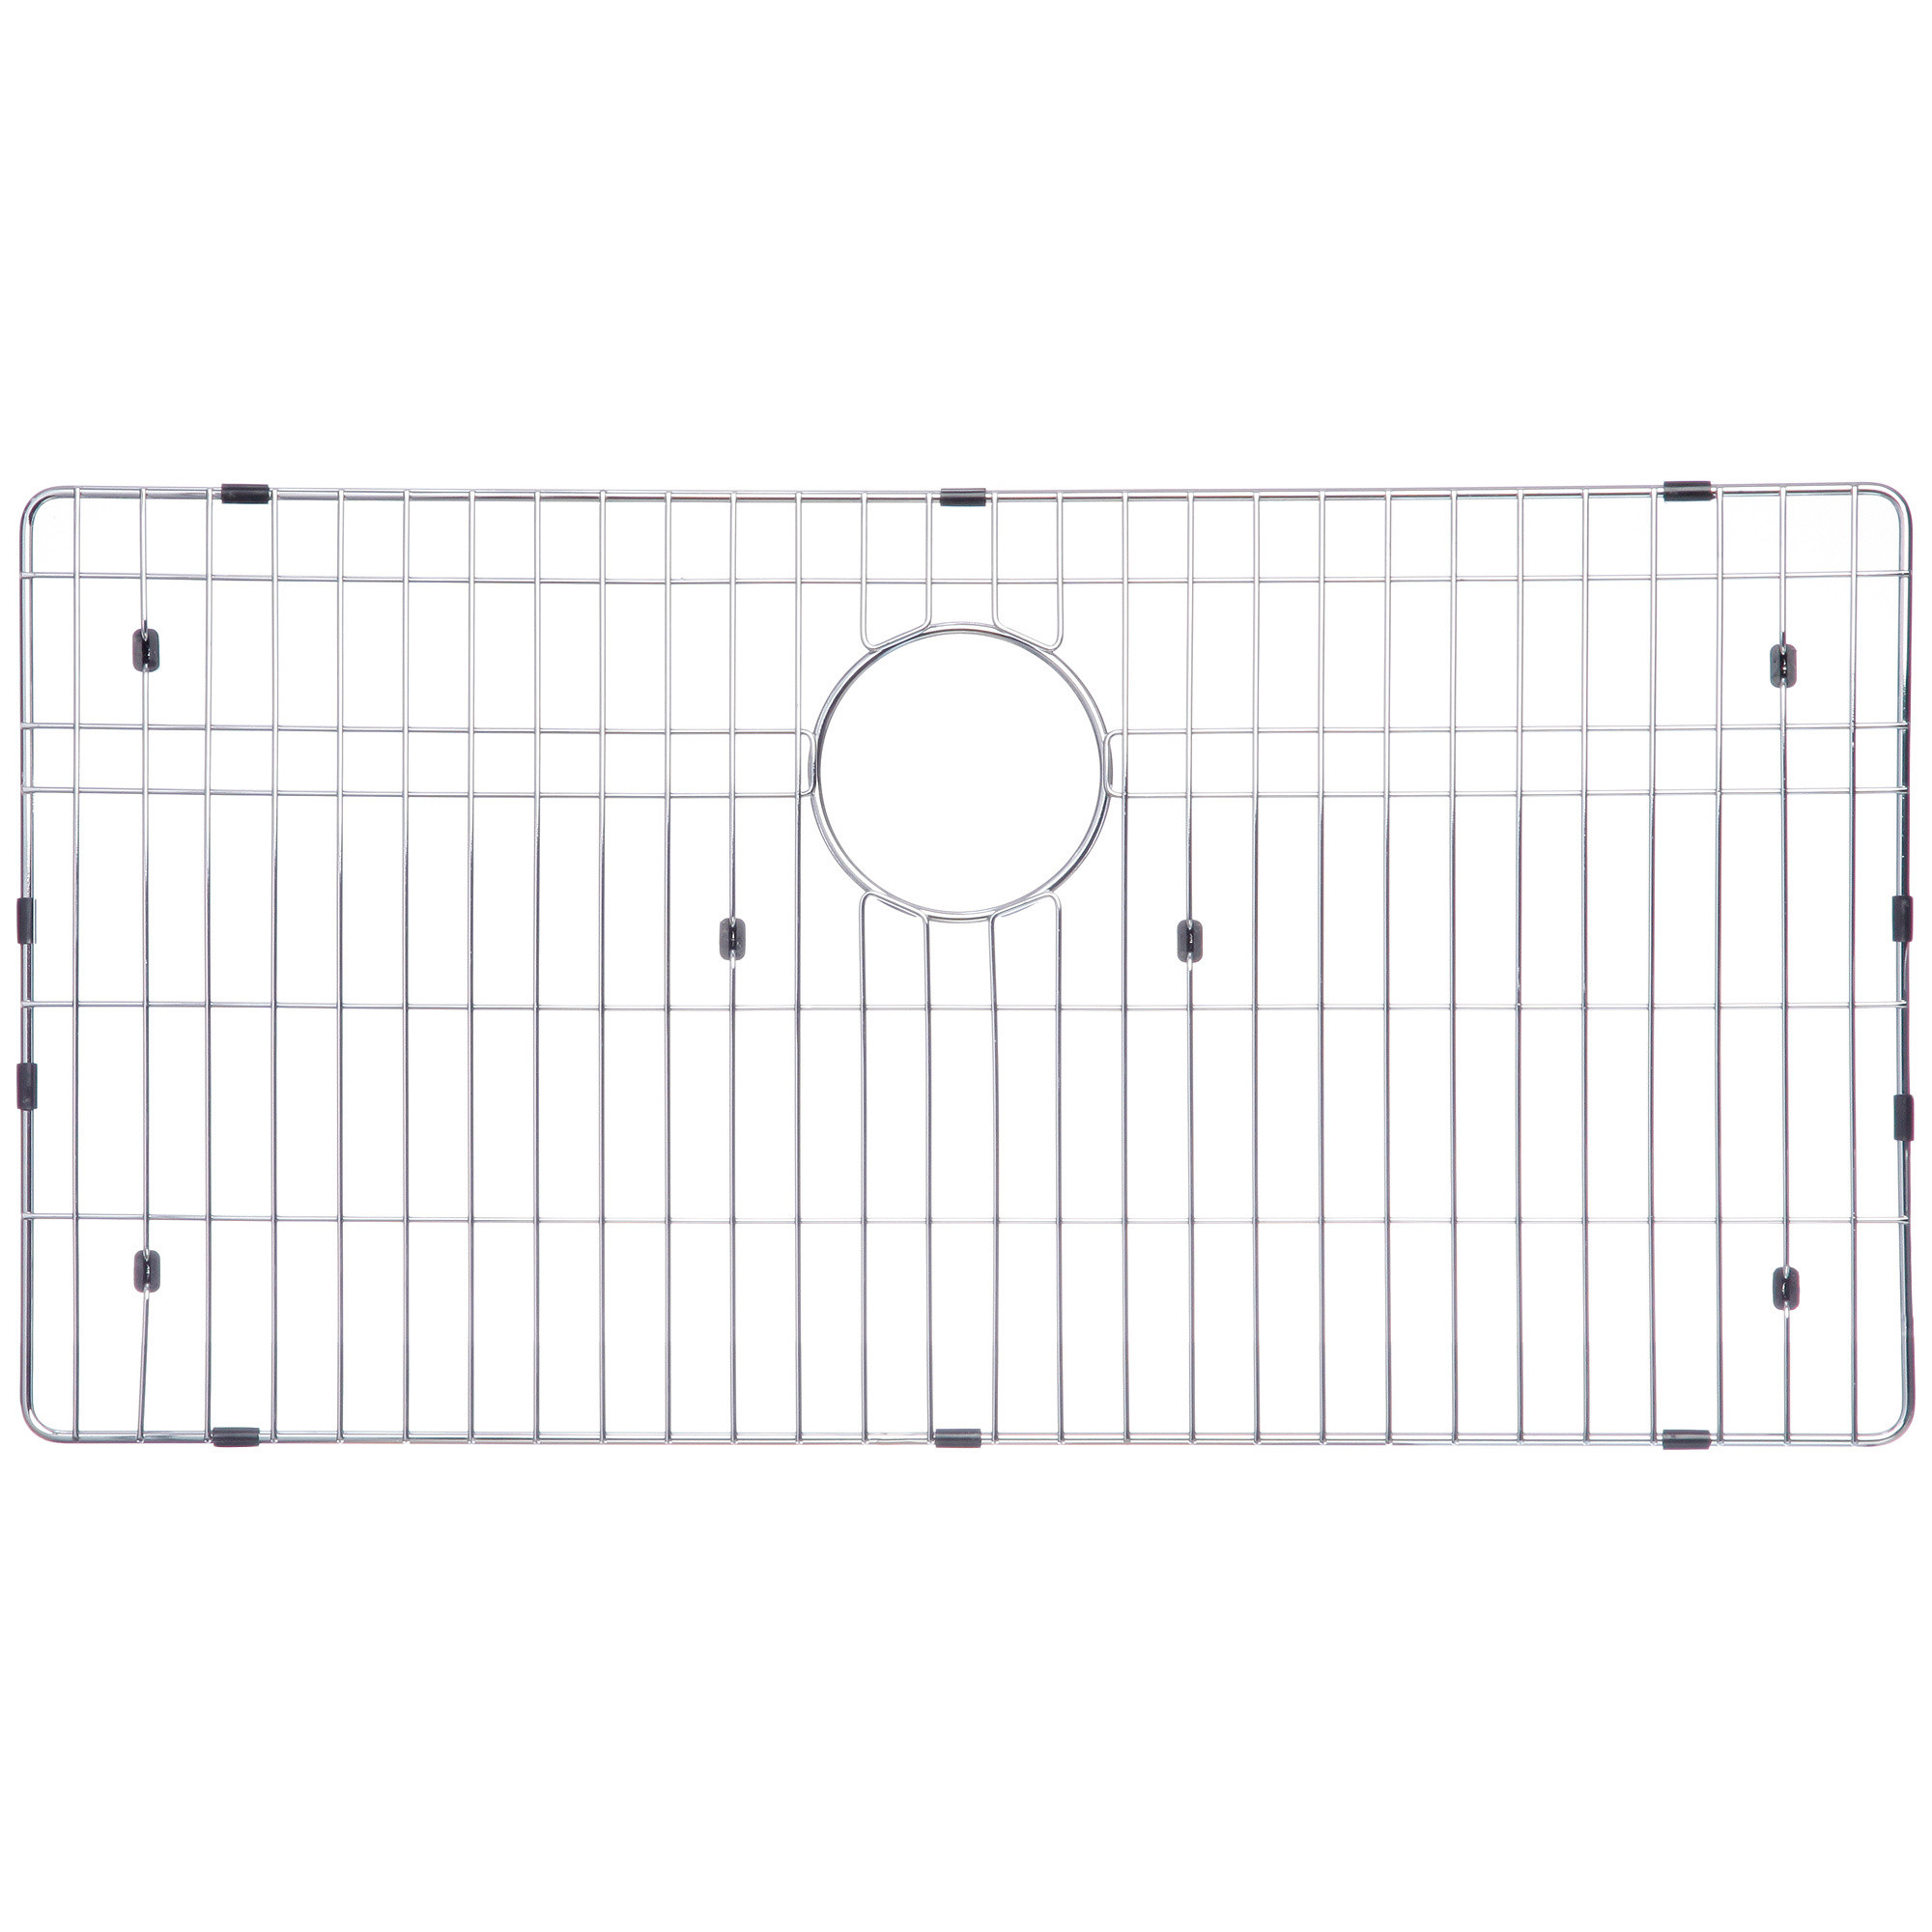 Ukinox GRS838SS Bottom Grid with Stainless Steel Construction for RS838